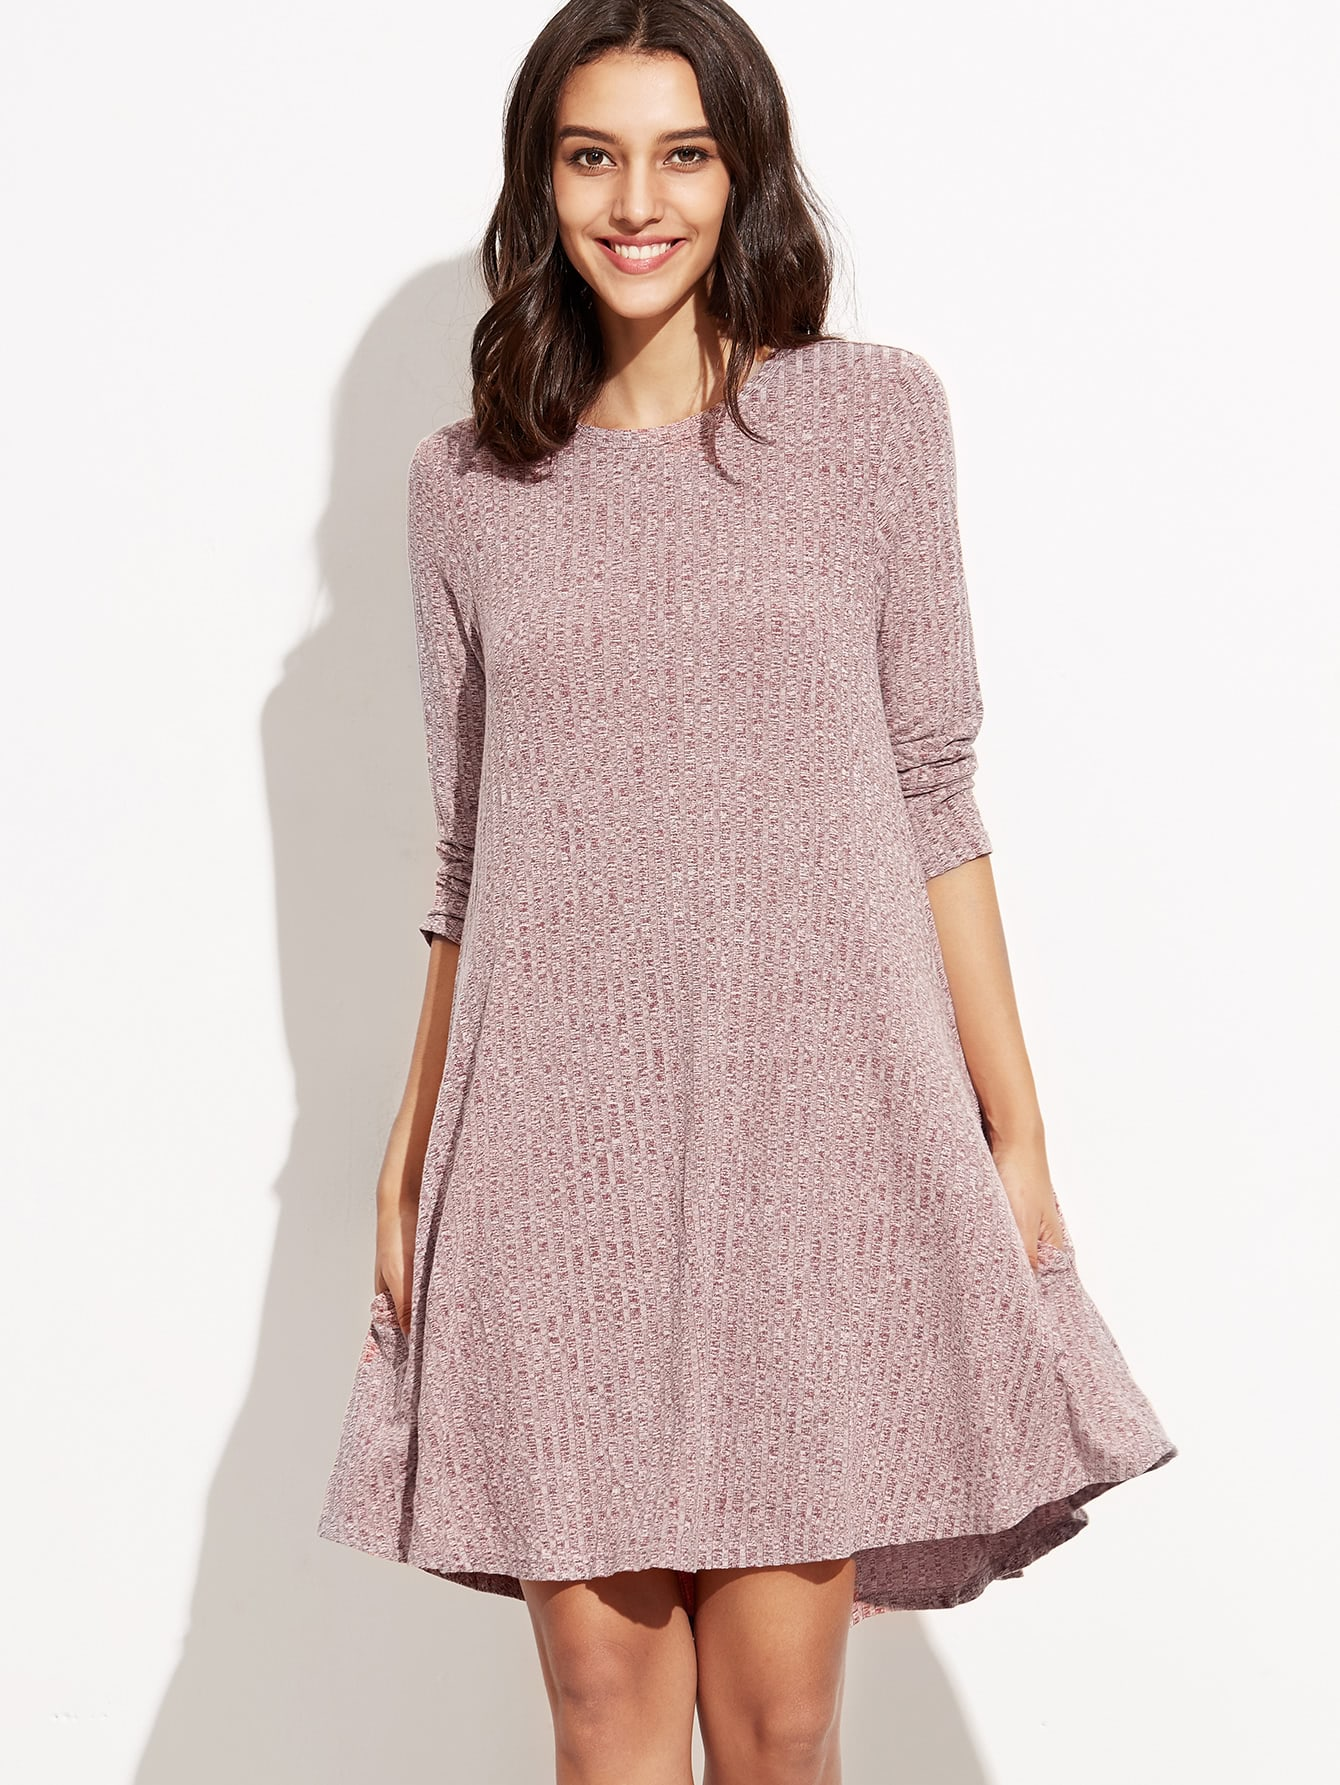 Burgundy Marled Knit Ribbed Swing Dress dress160830711